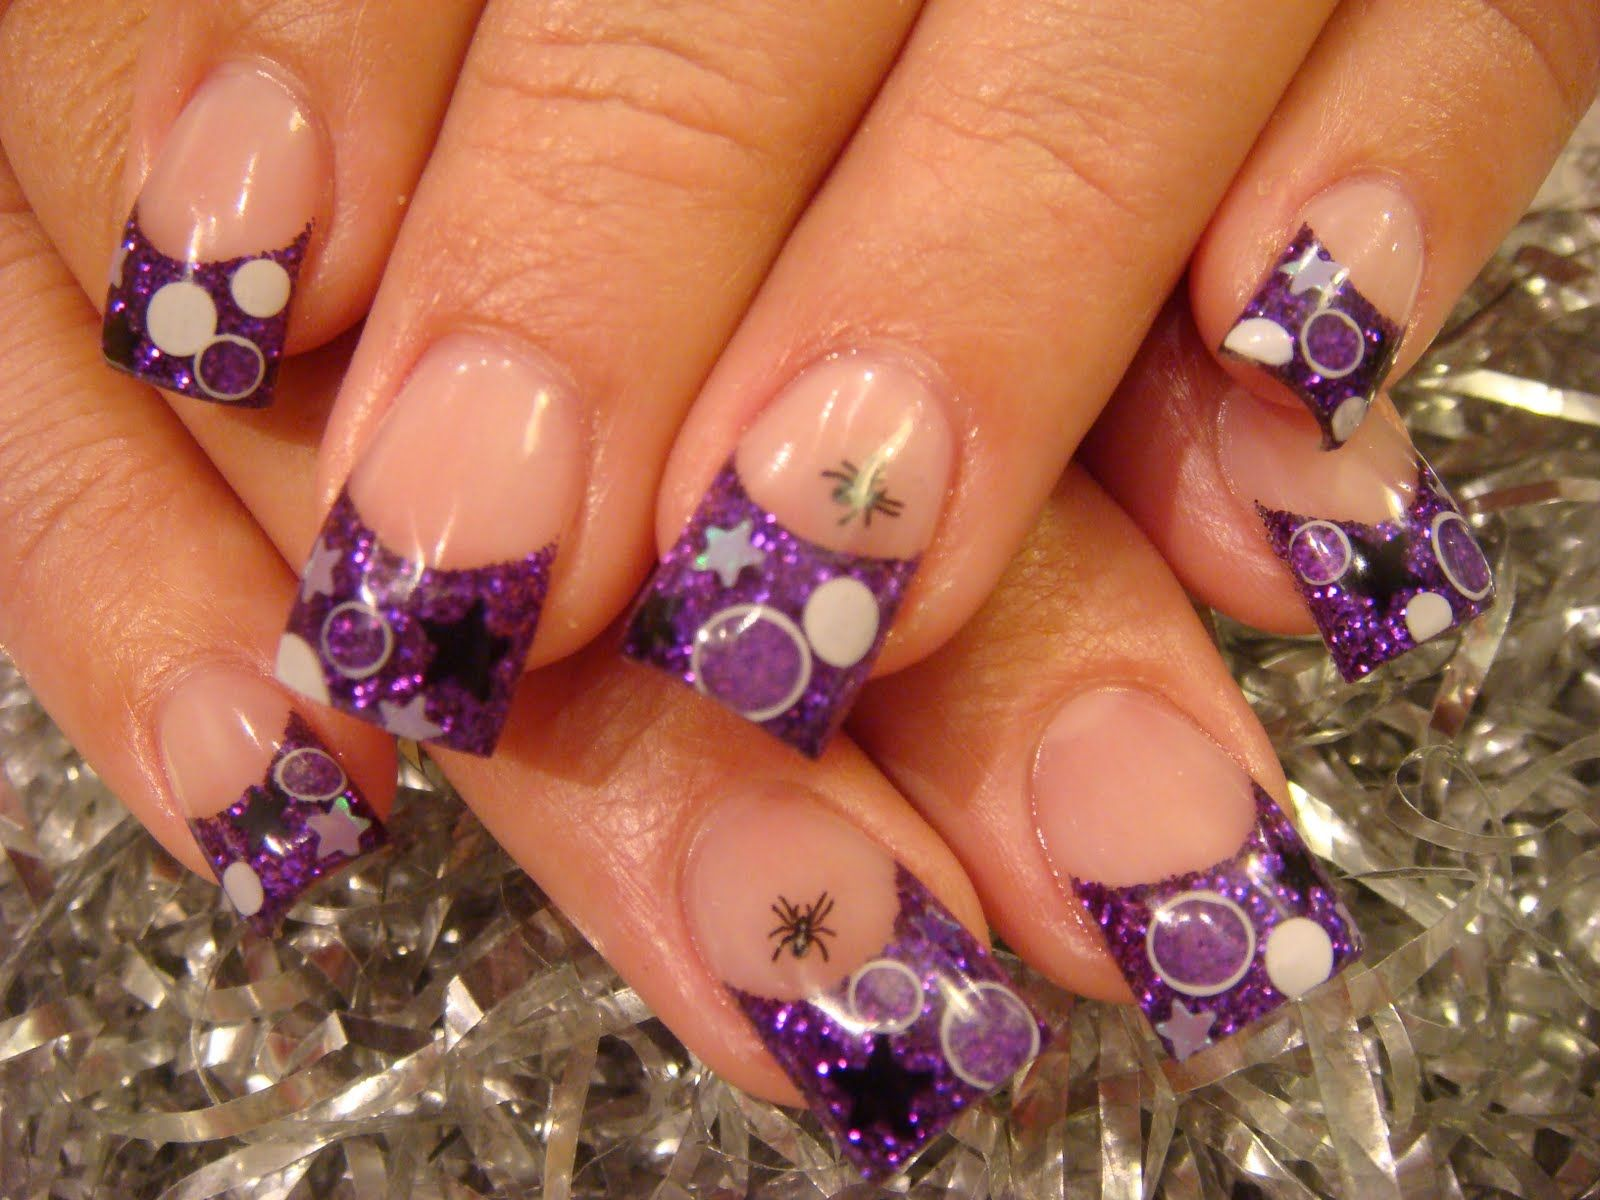 Acrylic Nails With Rhinestones | These are nails acrylic that I did ...